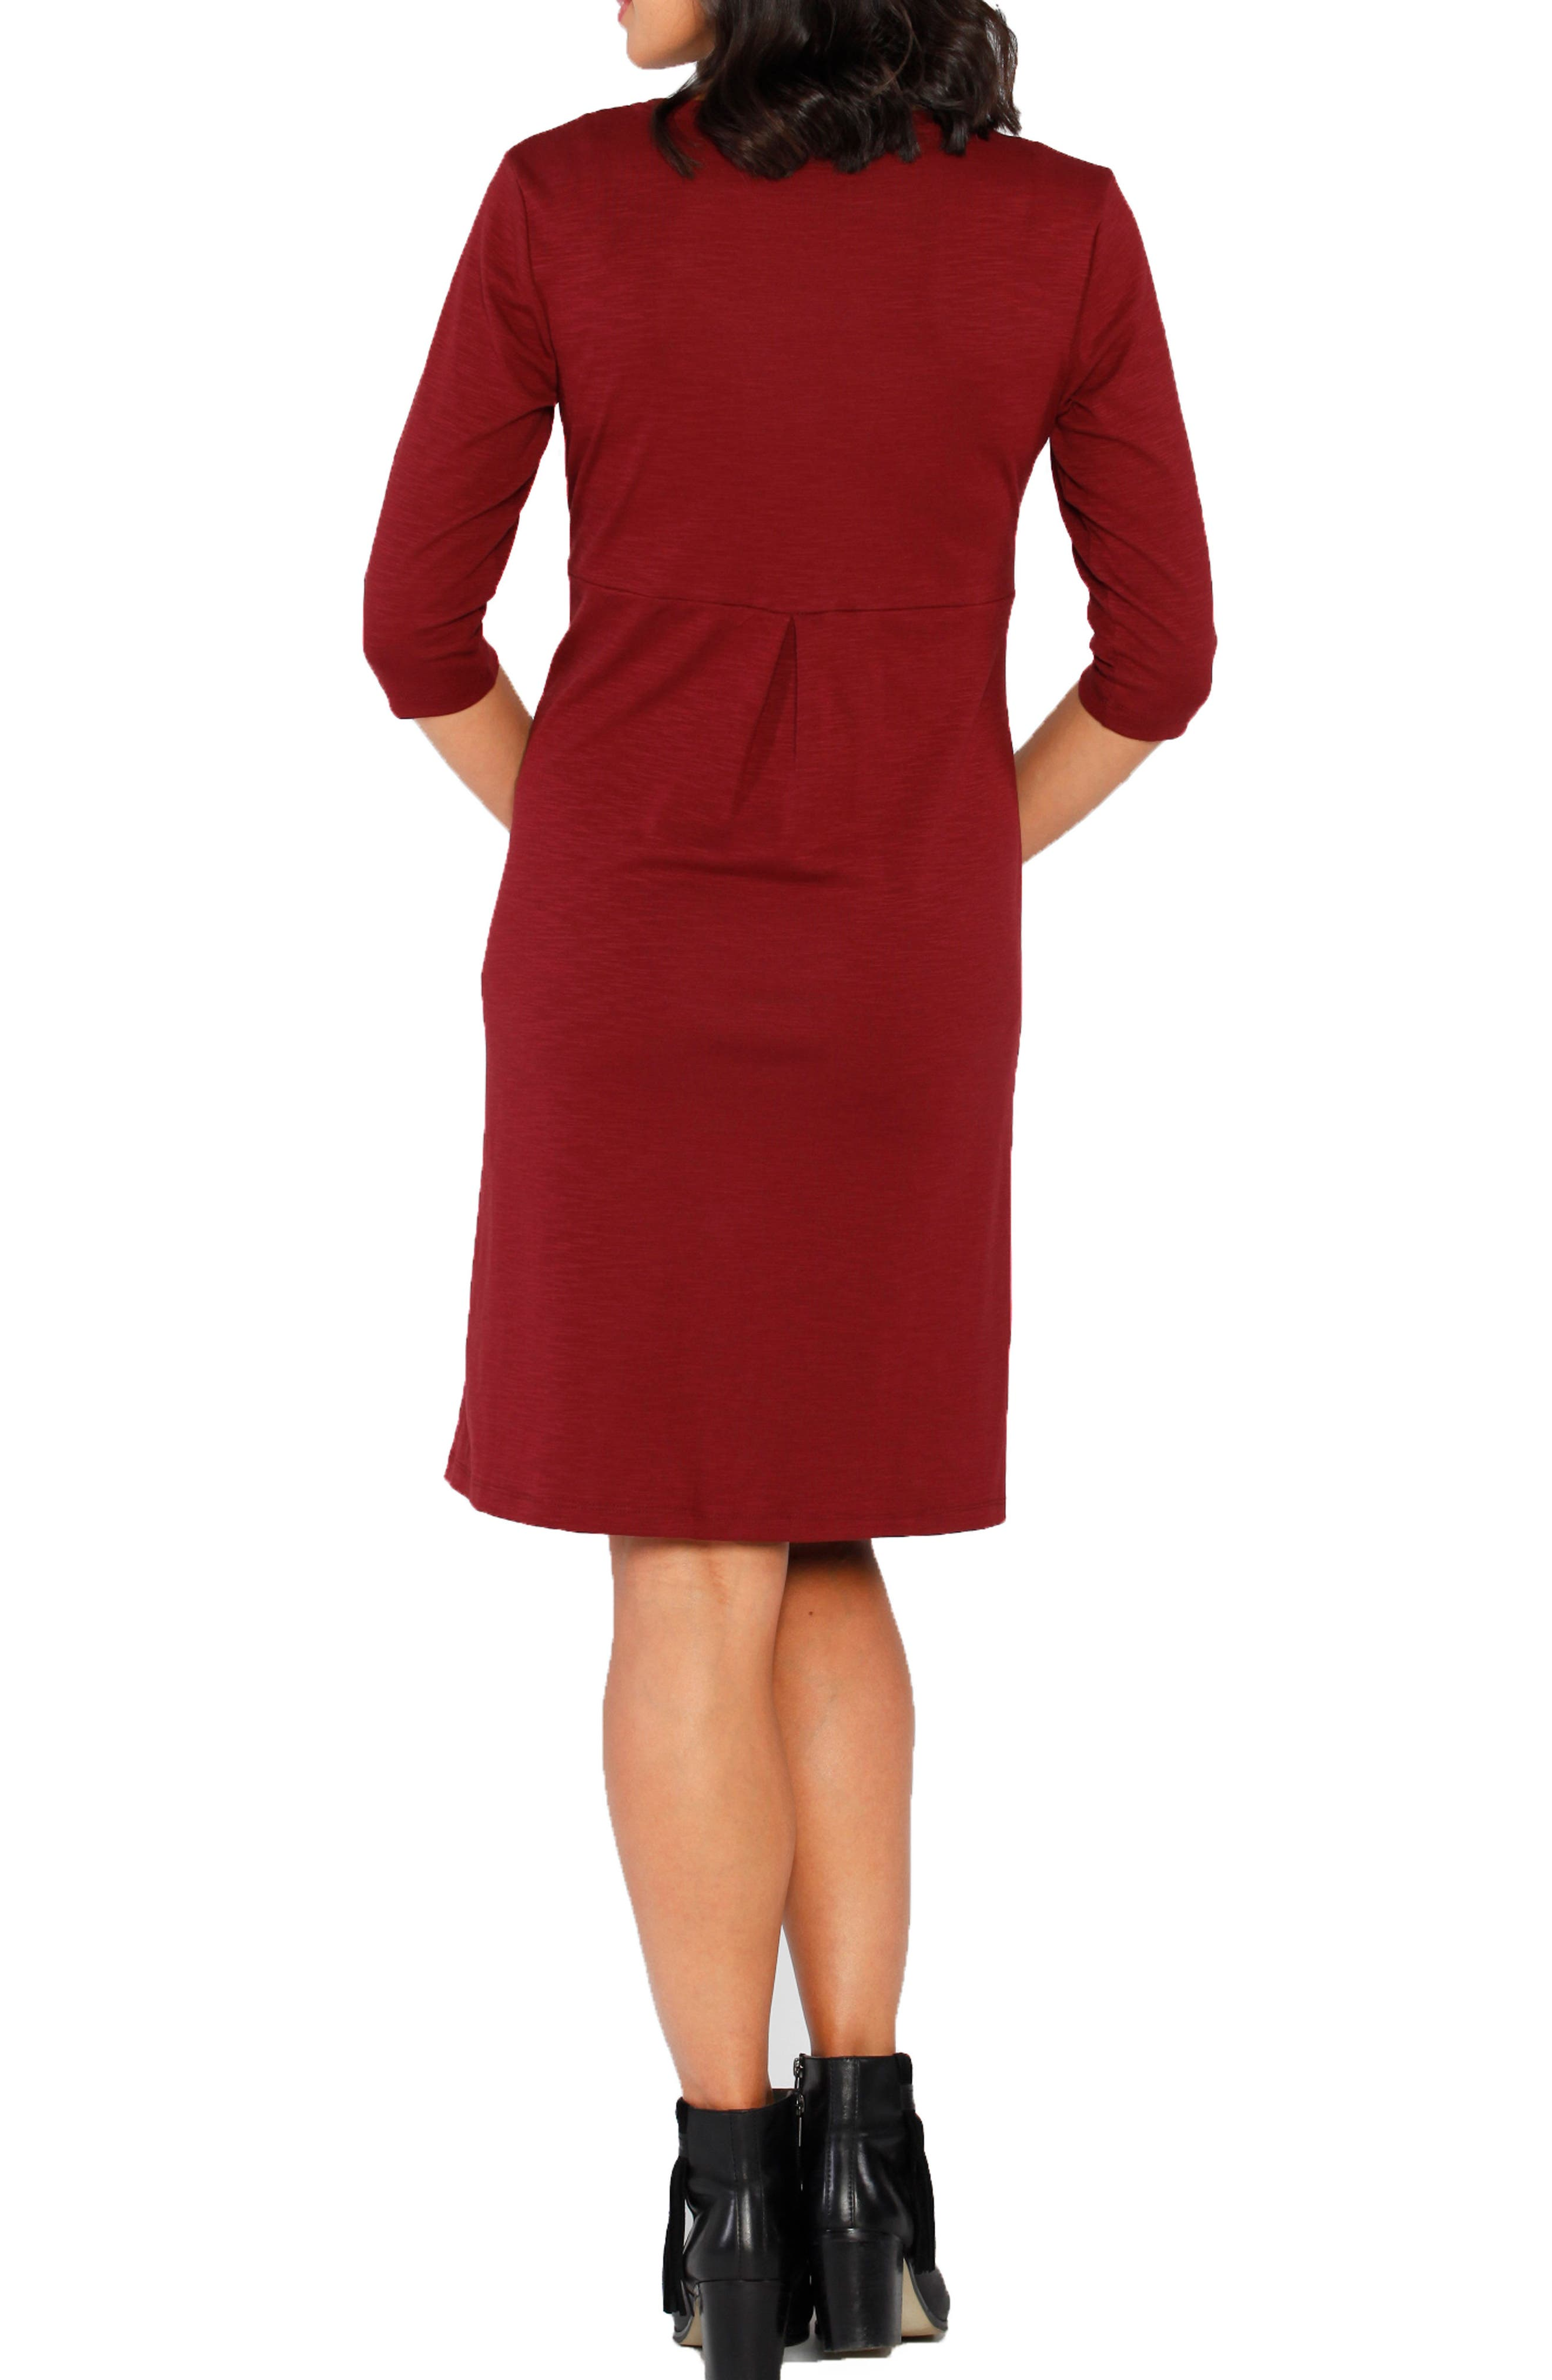 Stretch Jersey Maternity Dress,                             Alternate thumbnail 2, color,                             Earth Red